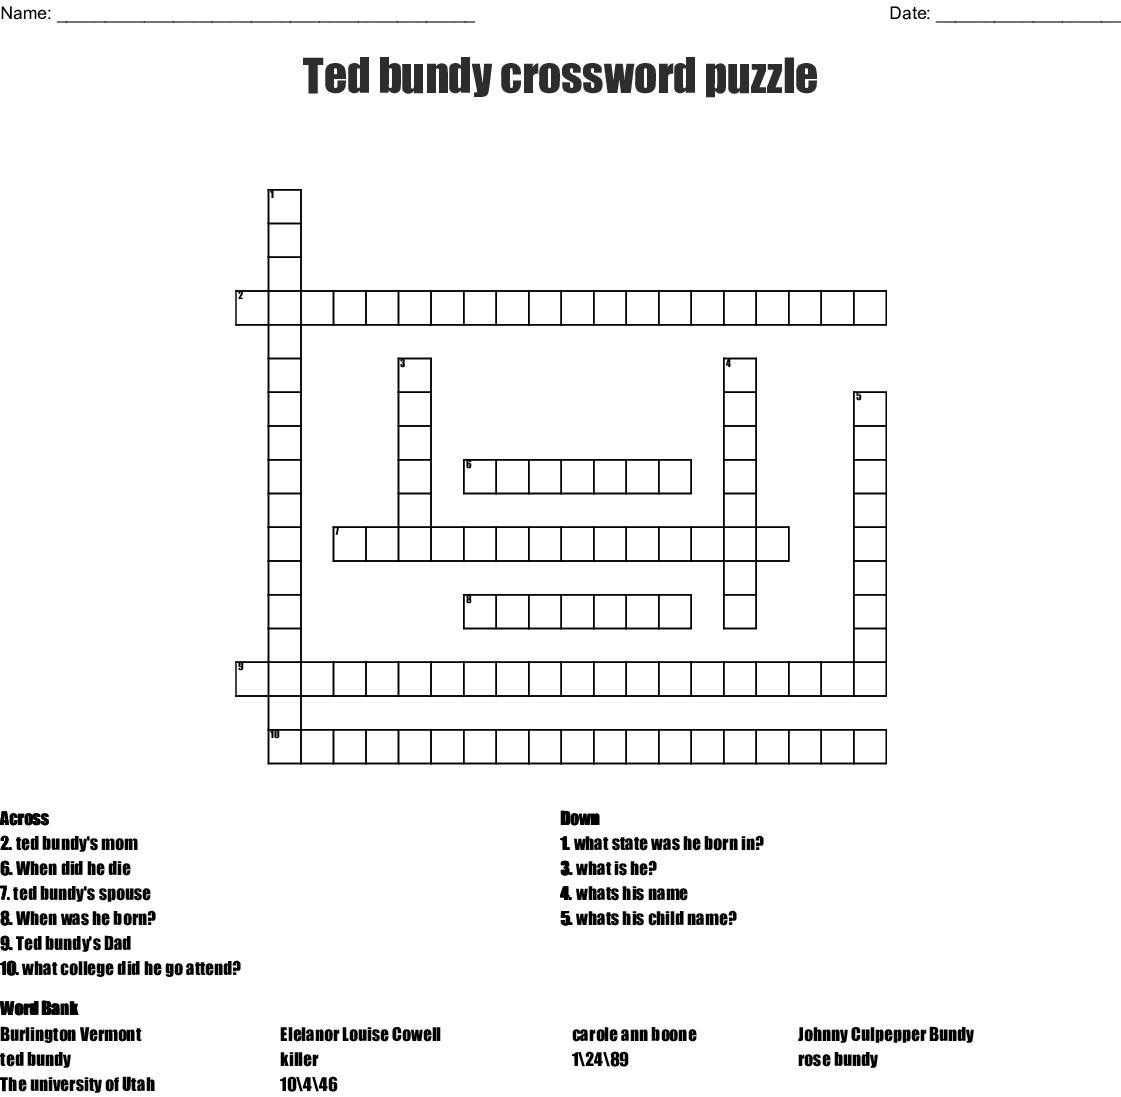 Ted Bundy Crossword Puzzle